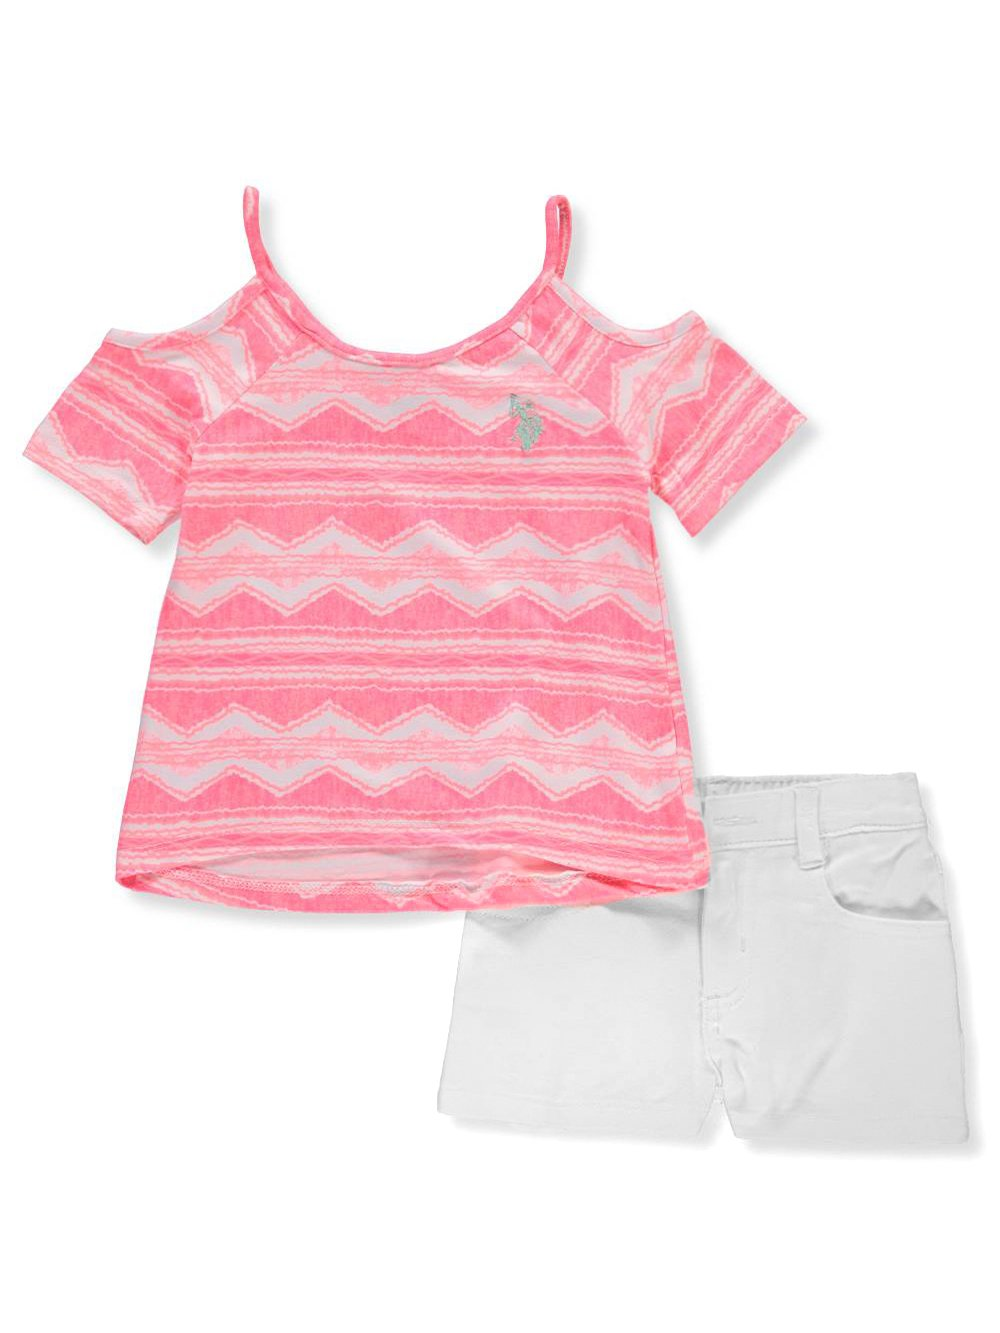 U.S. Polo Assn.. Big Girls' Fashion Top and Short Set, Cold Shoulder Milky Brush Print Twill Short Multi, 7